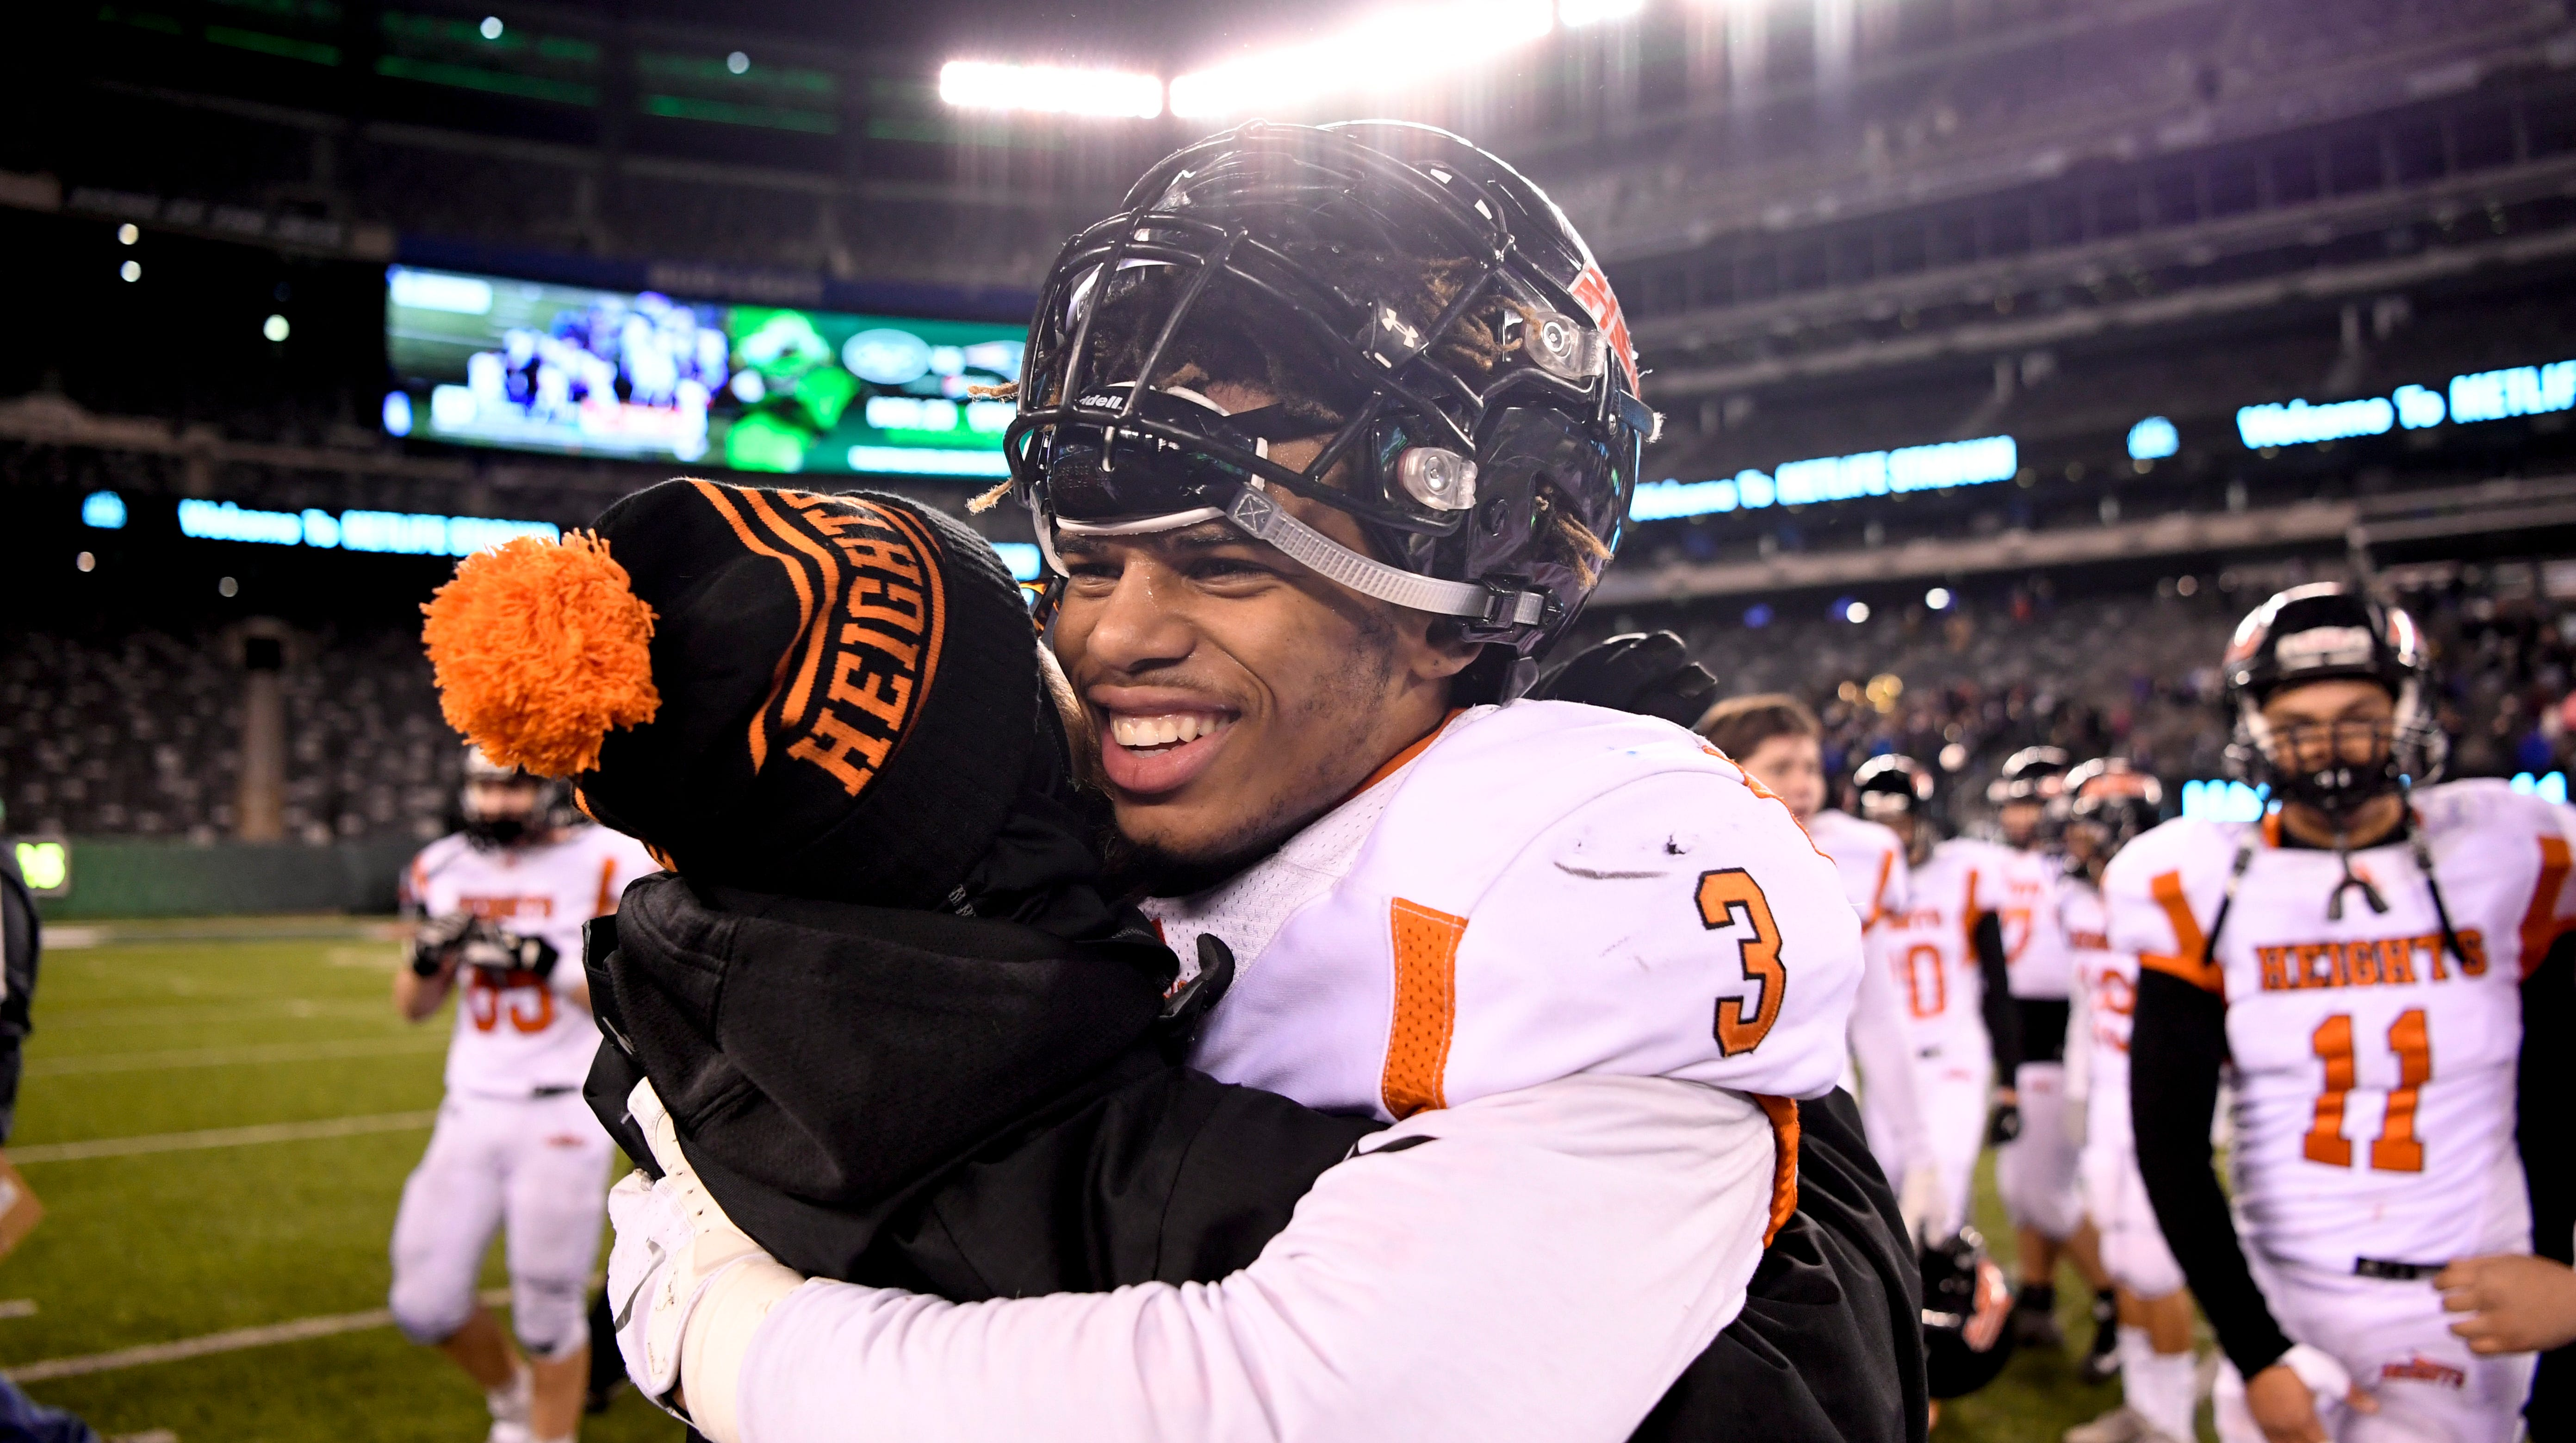 Hasbrouck Heights' Jasiah Purdie celebrates his team's 41-7 win over Butler for the North Group 1 championship on Friday, Nov. 23, 2018, in East Rutherford.